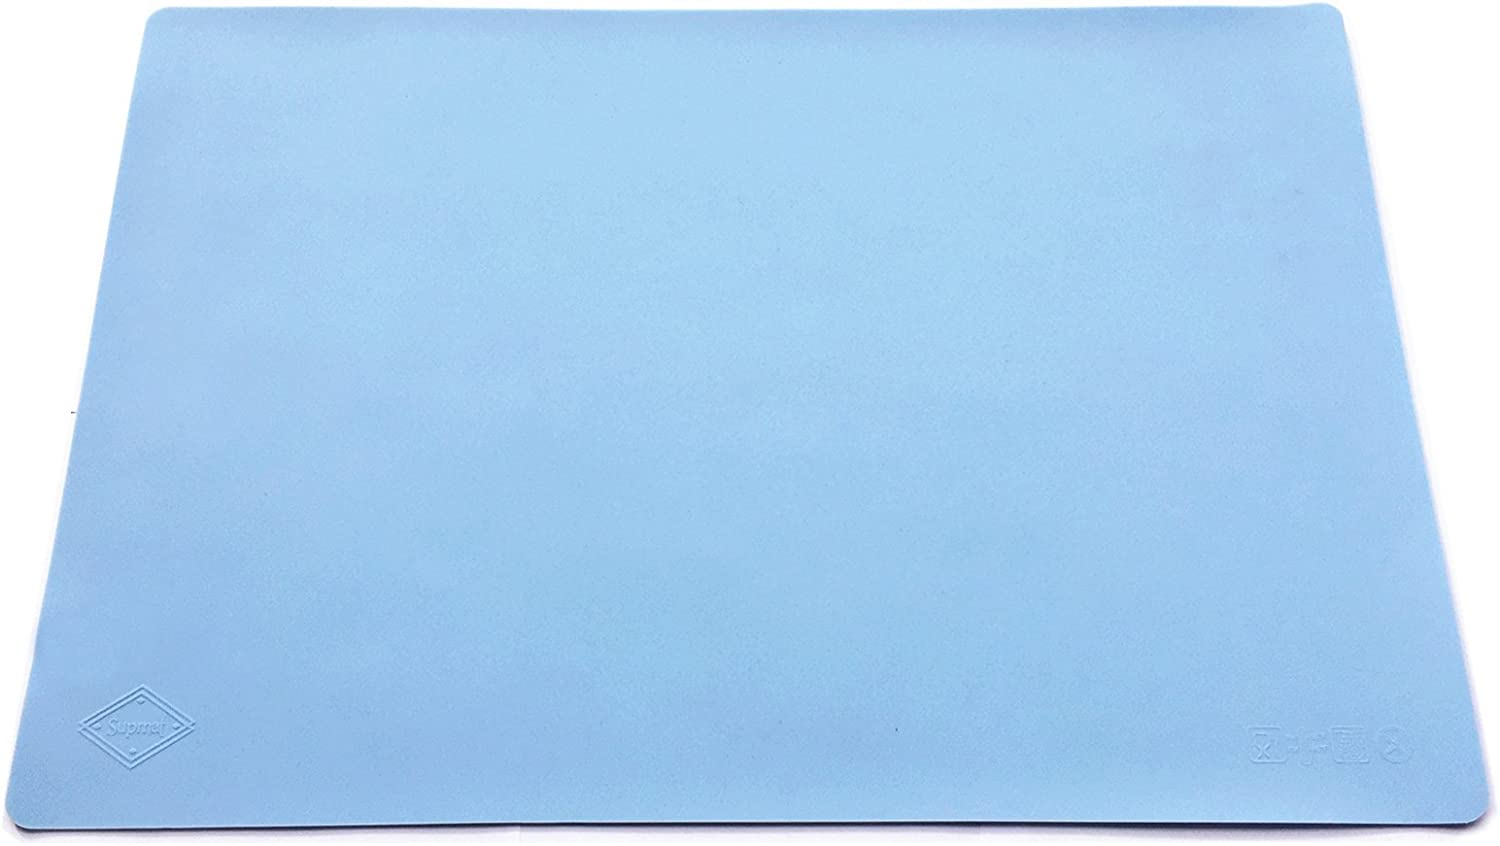 Supmat XL, Super Versatile Extra Large and Thick Silicone Mat, Counter Mat (1, Serenity Blue)